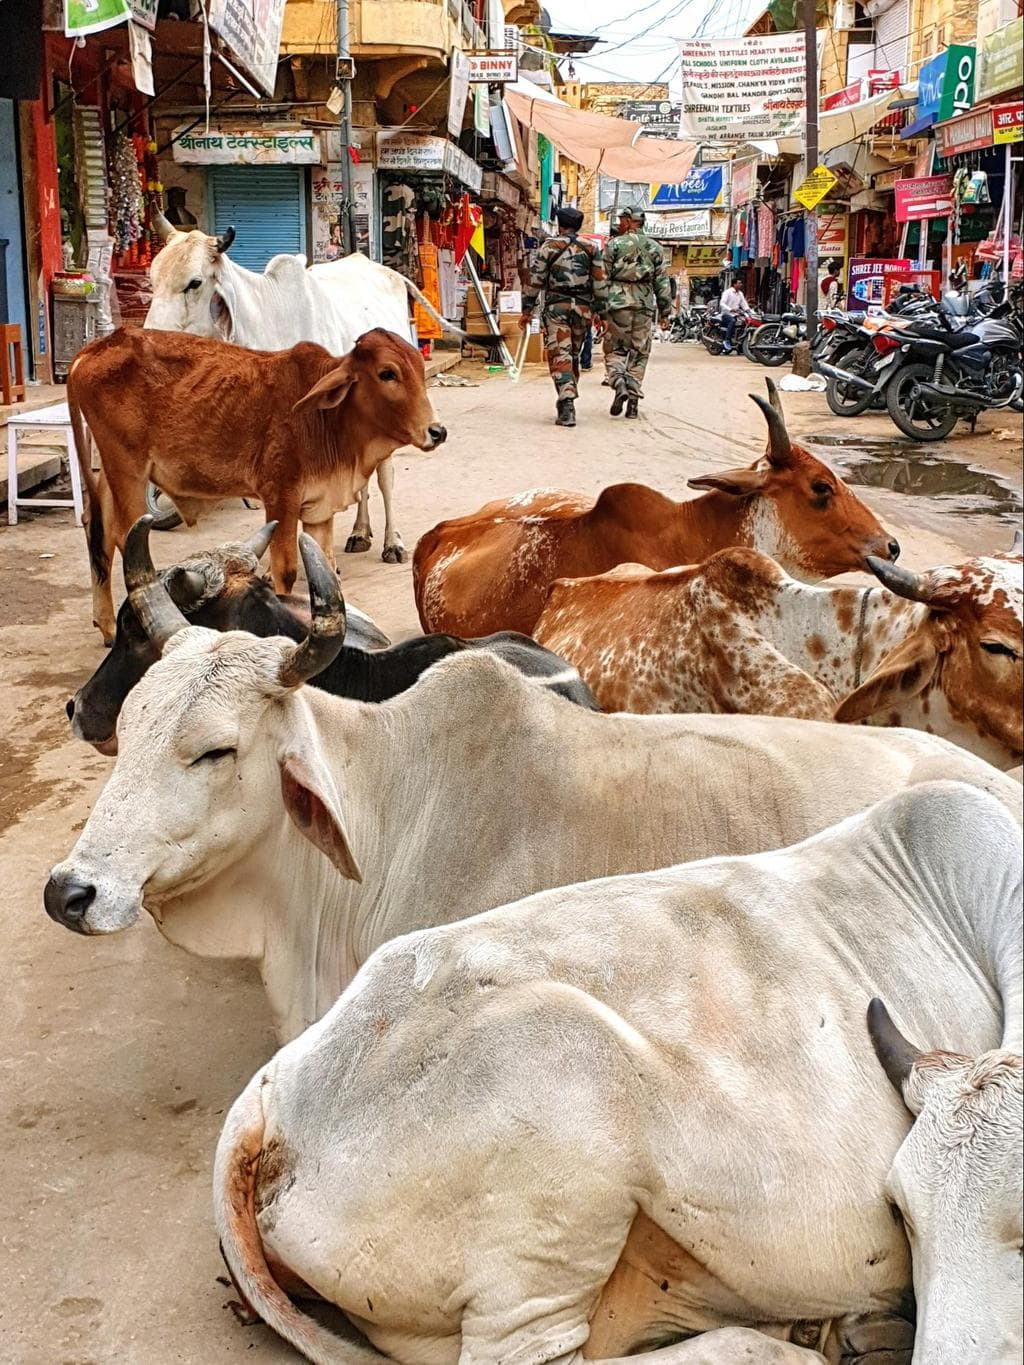 Cows are everywhere in Jaisalmer